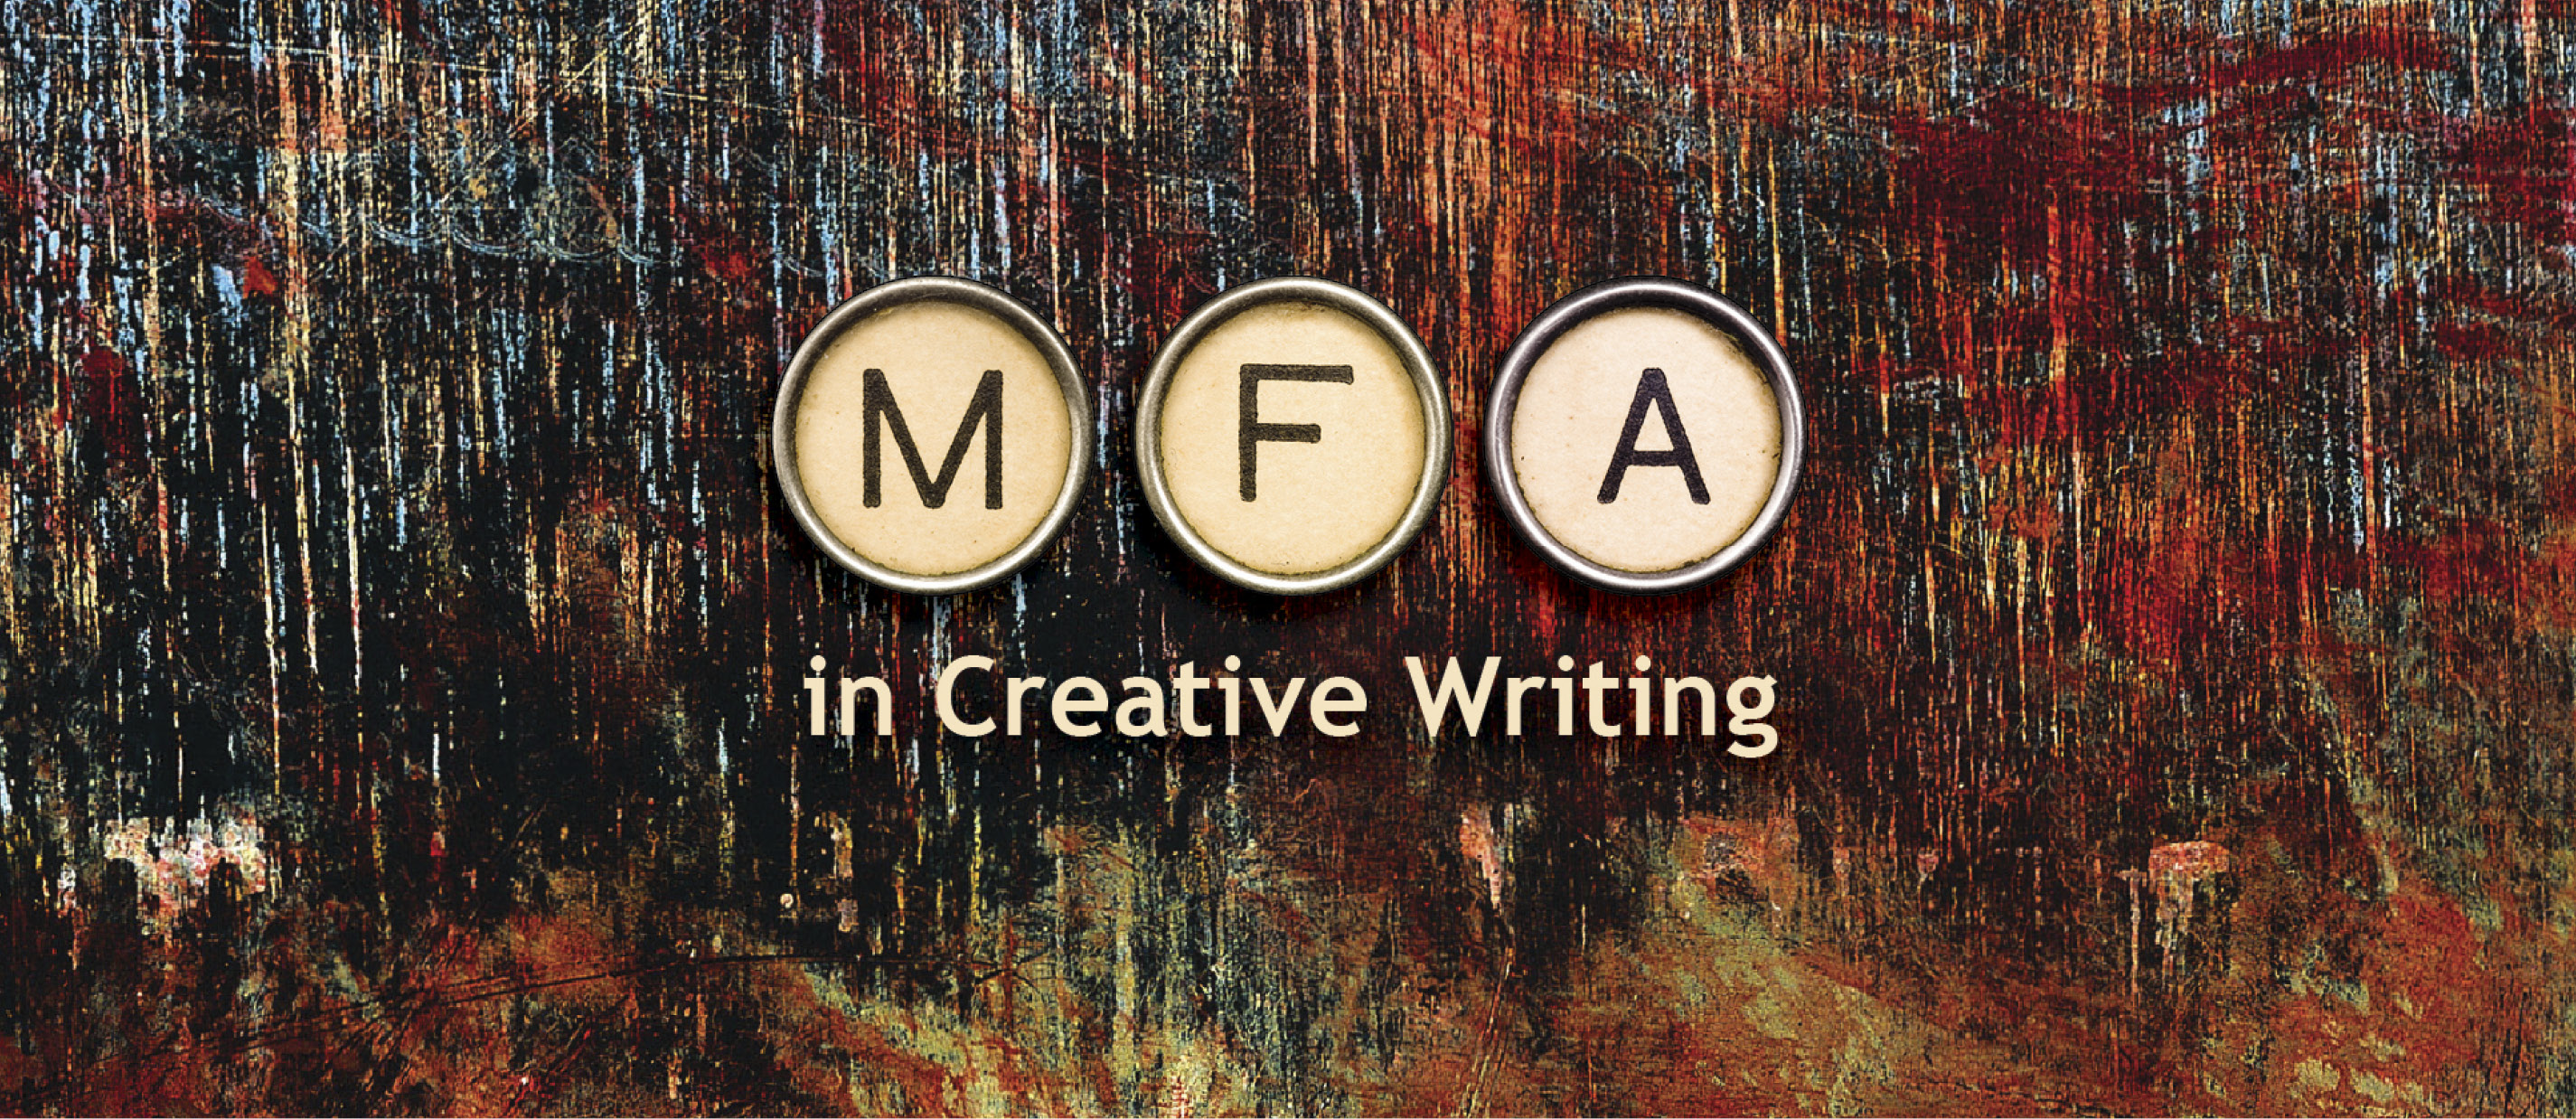 Online mfa creative writing programs